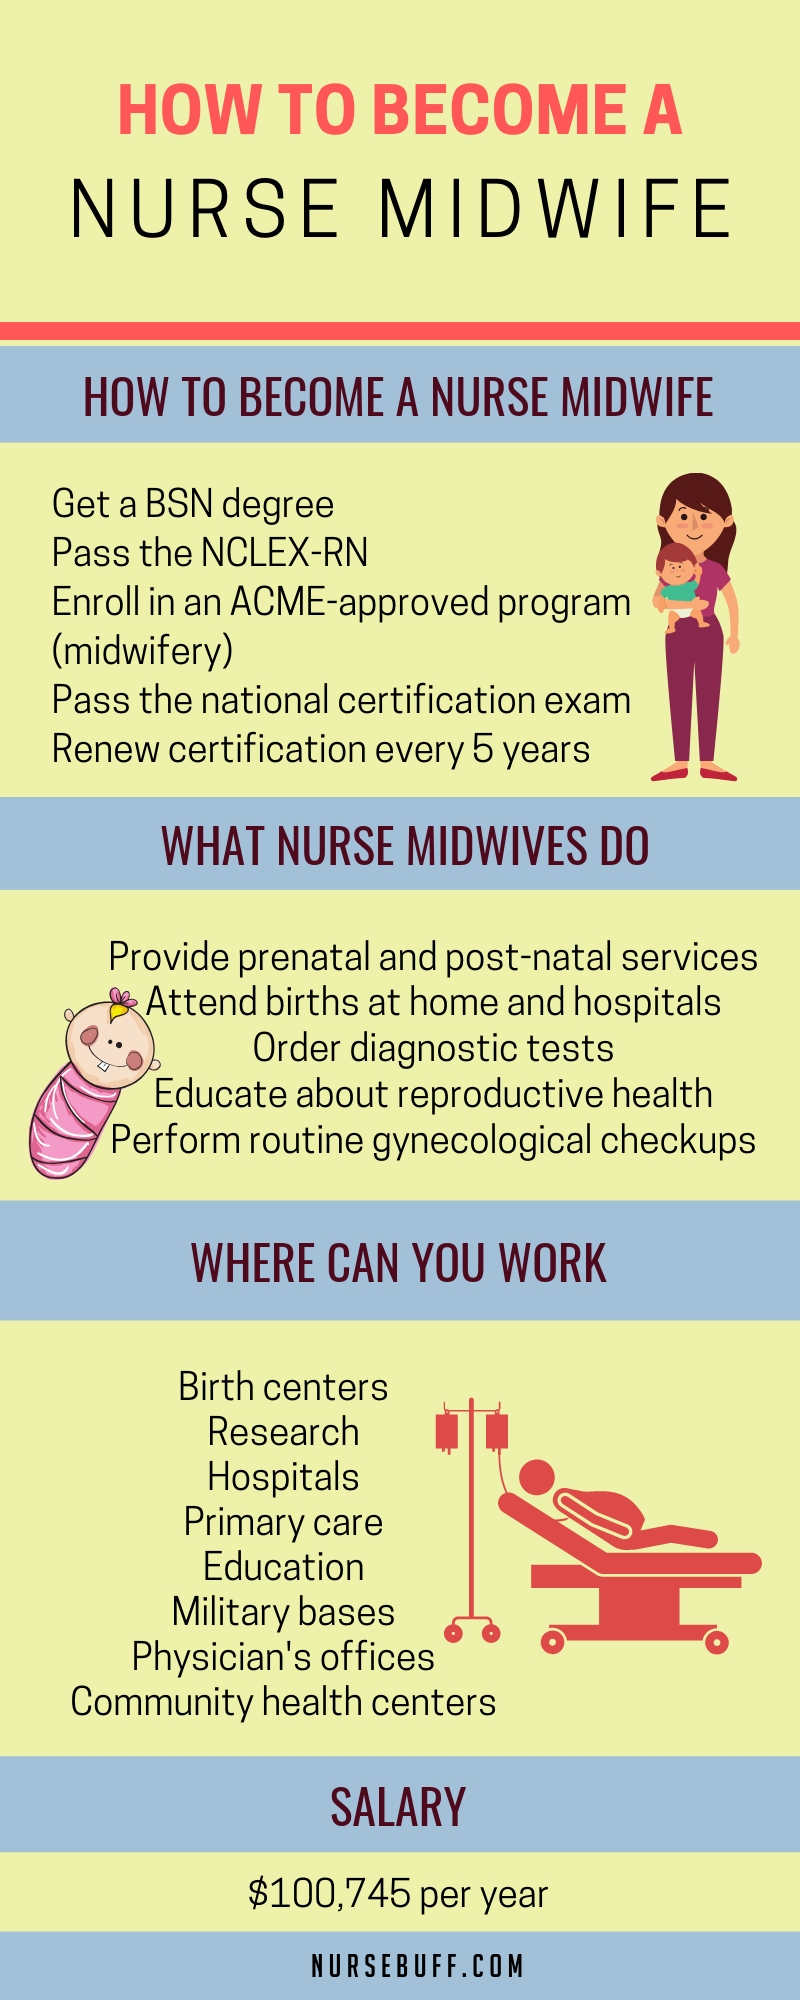 how to become a nurse midwife infographic